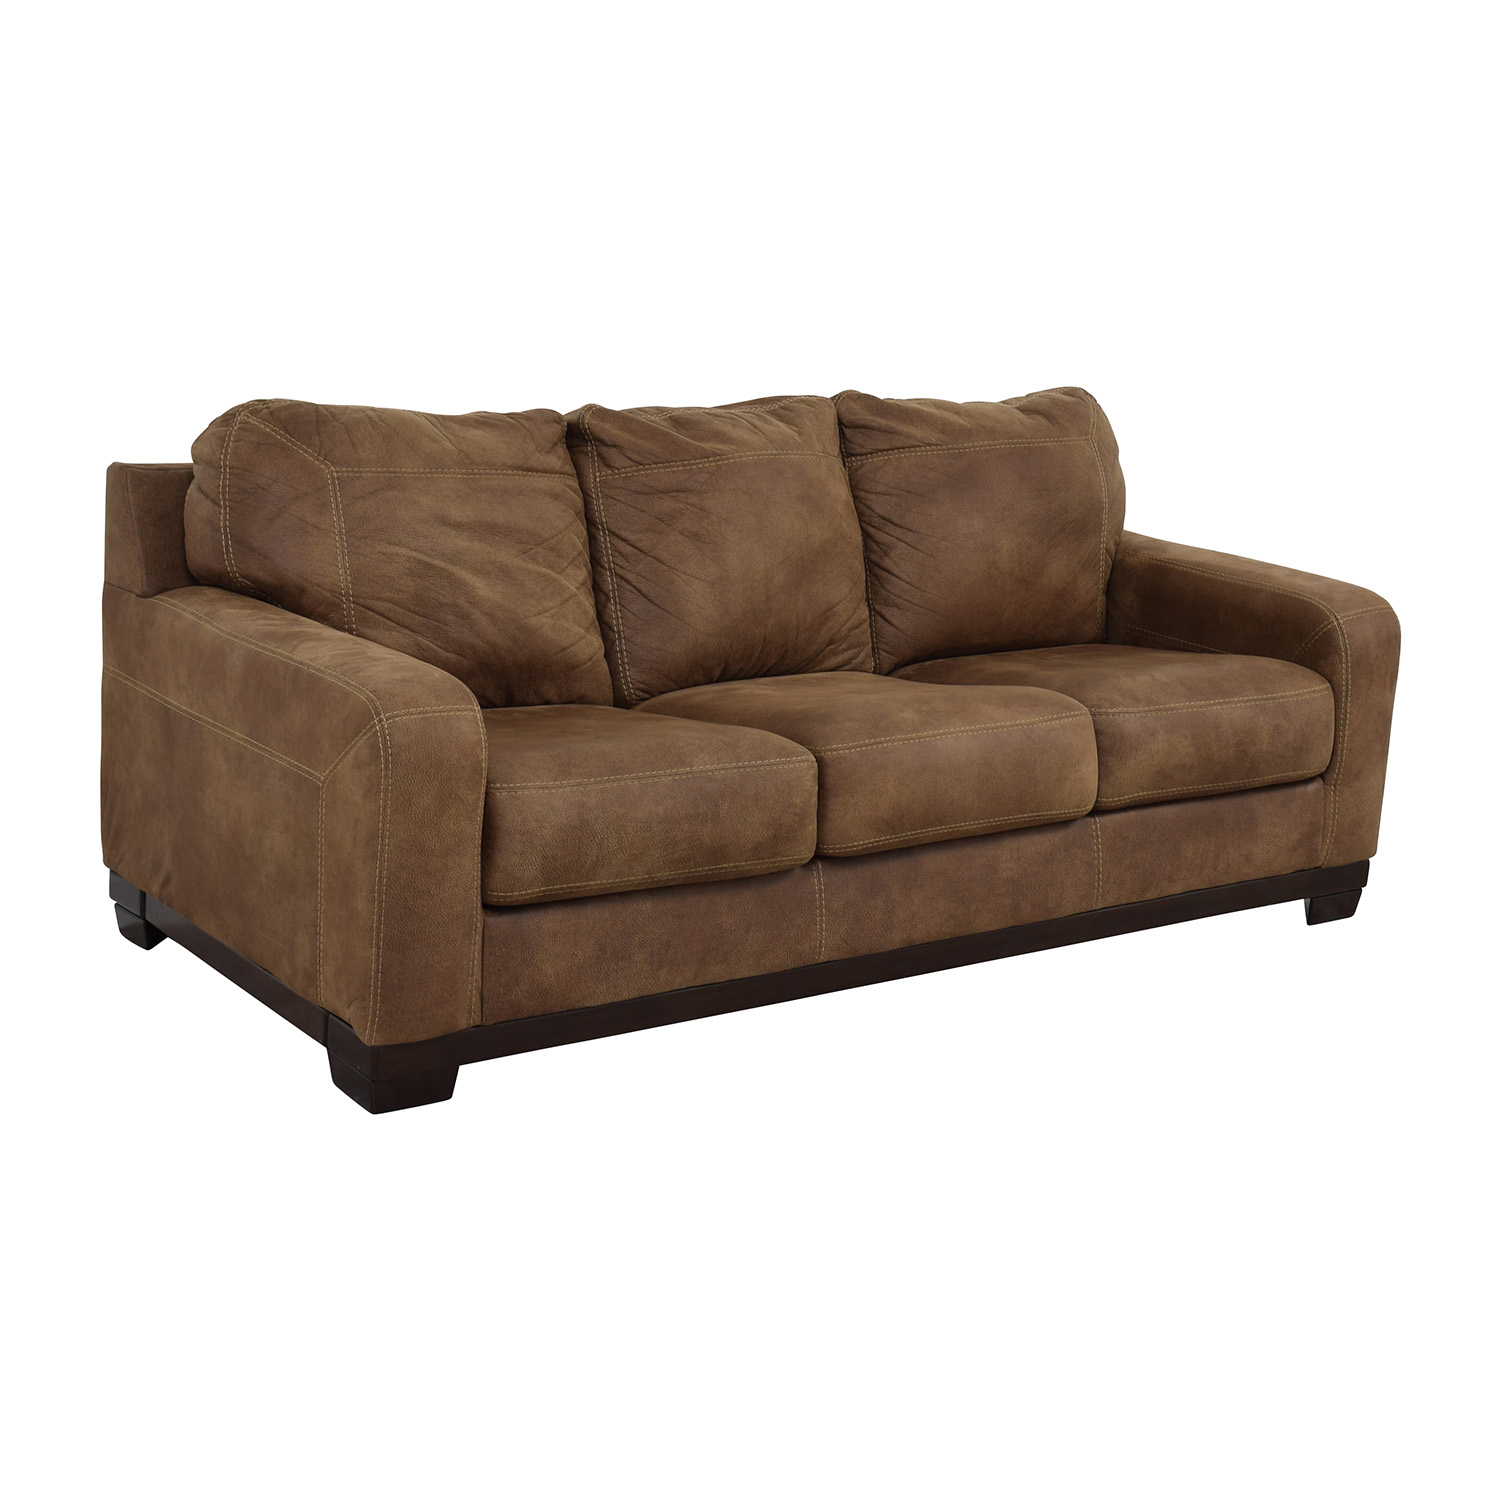 79 off ashley furniture ashley furniture kylun brown three cushion couch sofas Ashley couch and loveseat